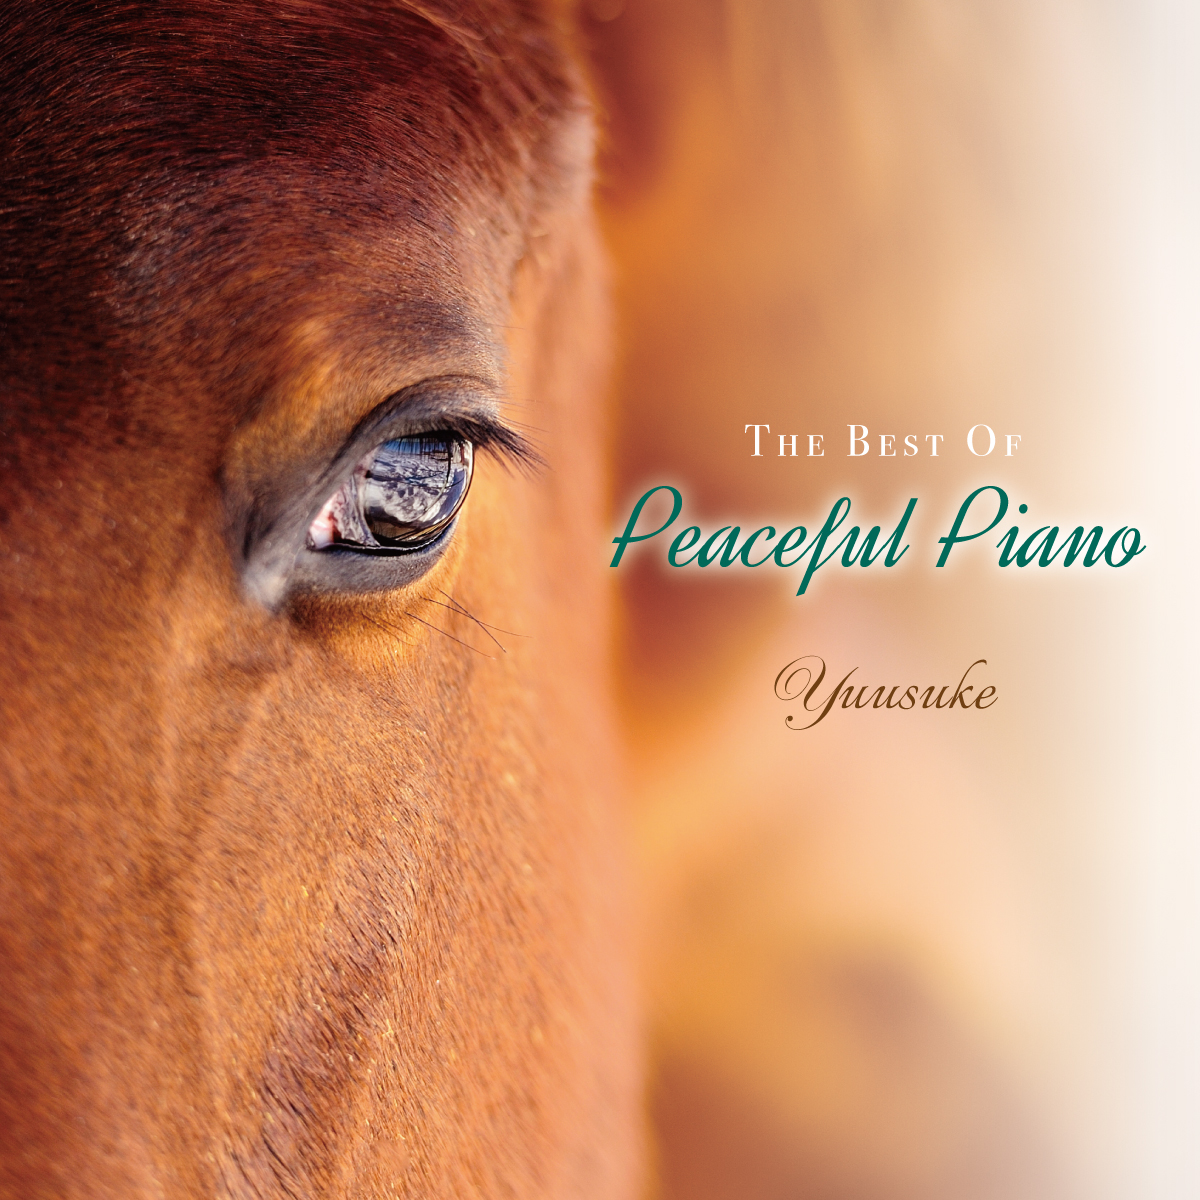 The Best of Peaceful Piano